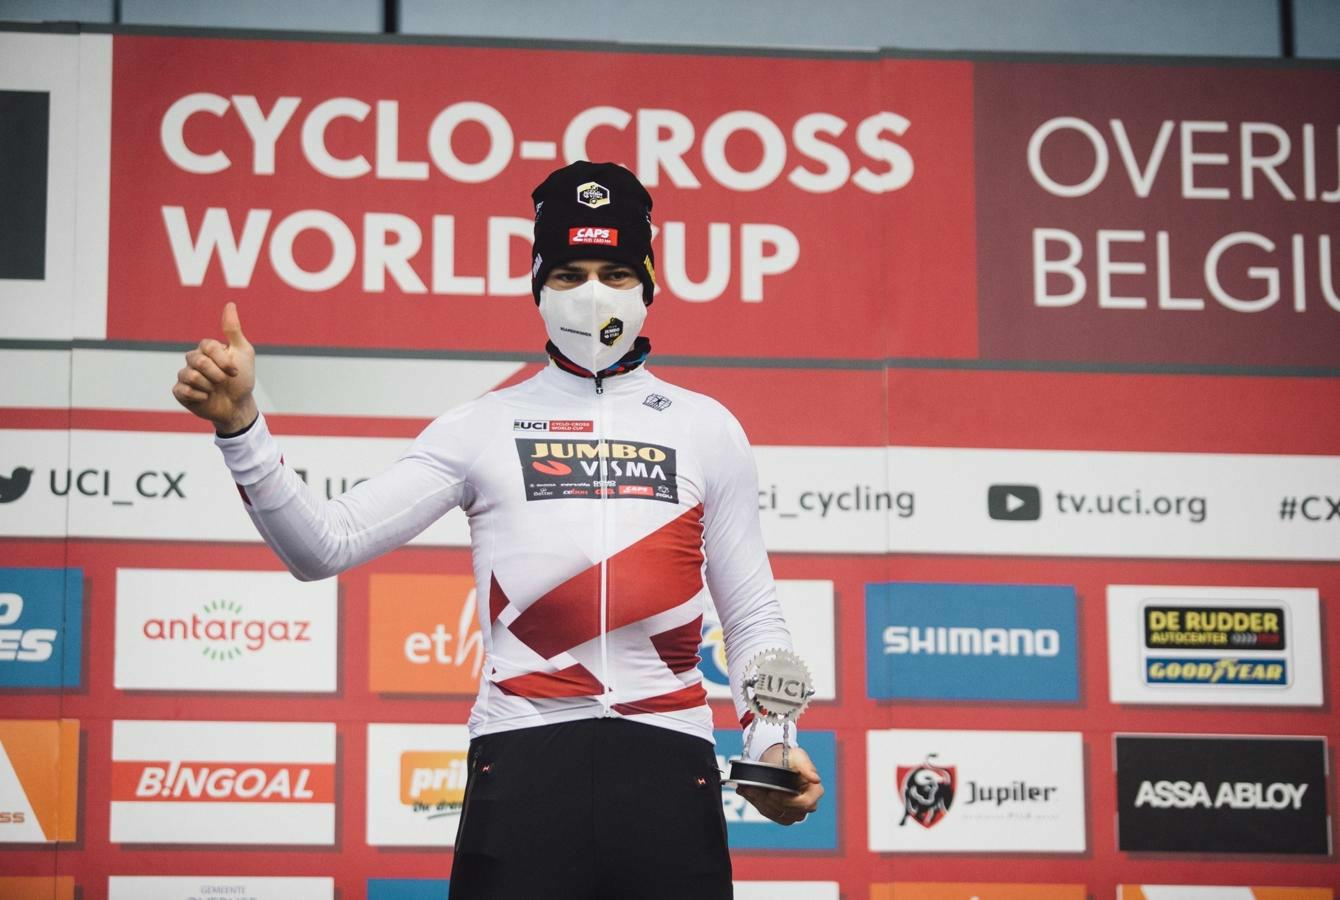 Wout van Aert wins World Cup for third time